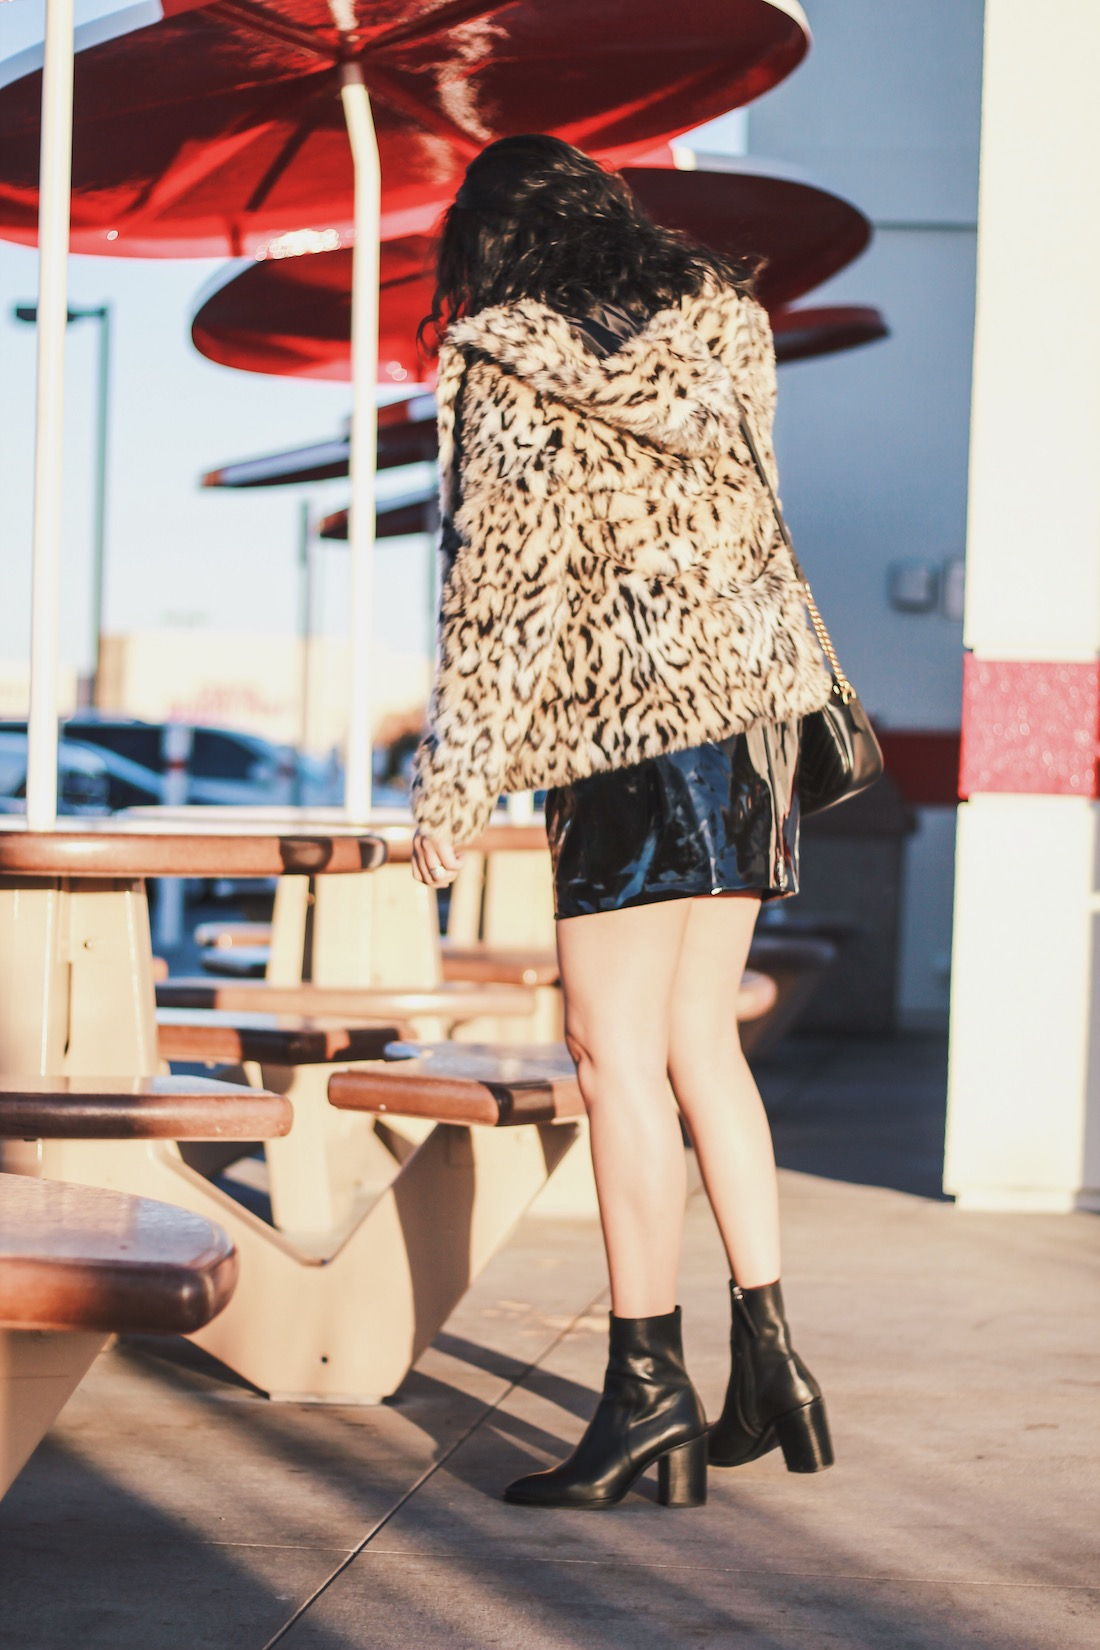 Leopard-Print-Jacket-Patent-Skirt-Ankle-Boots-Allaboutgoodvibes.com_Molly Larsen